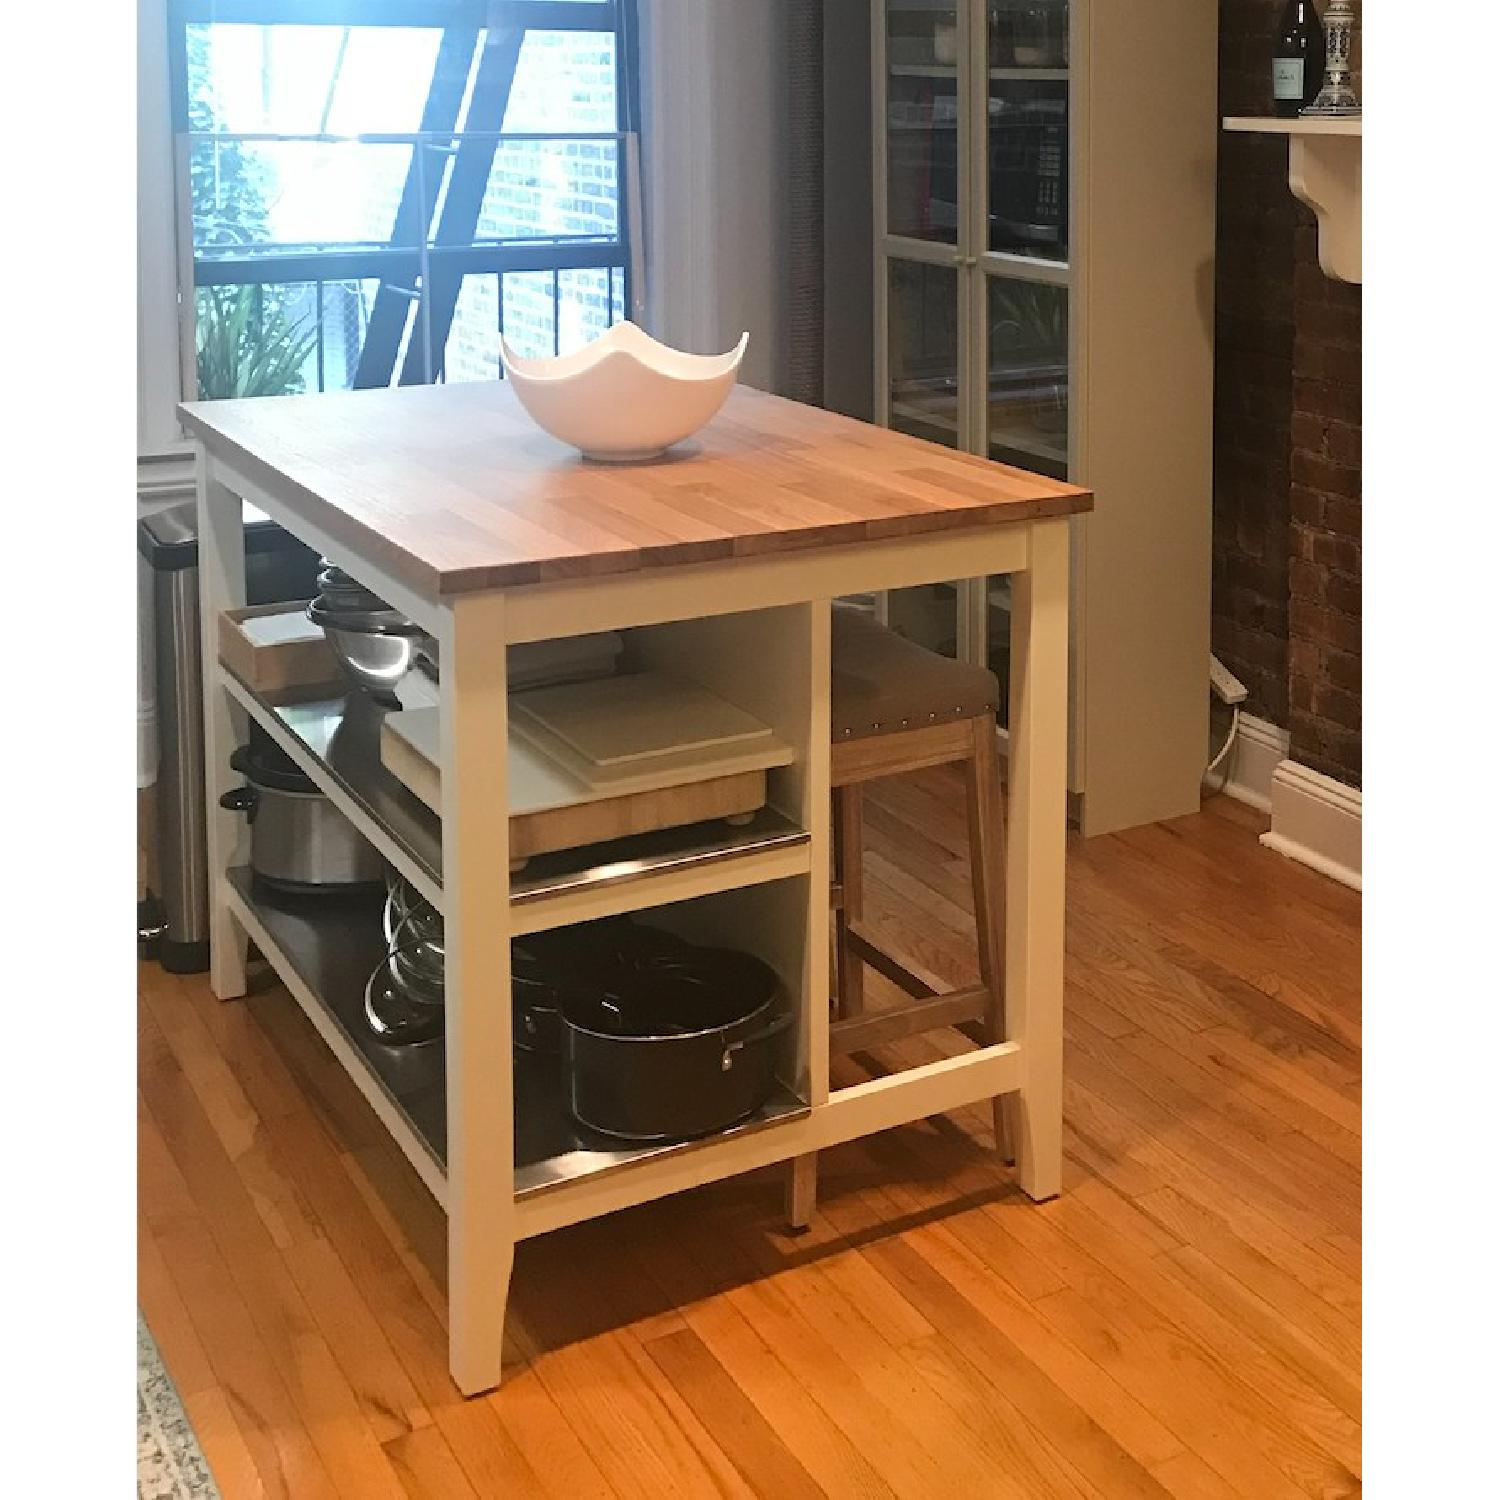 Marvelous Ikea Stenstorp Kitchen Island In White Oak W 2 Stools Aptdeco Pabps2019 Chair Design Images Pabps2019Com